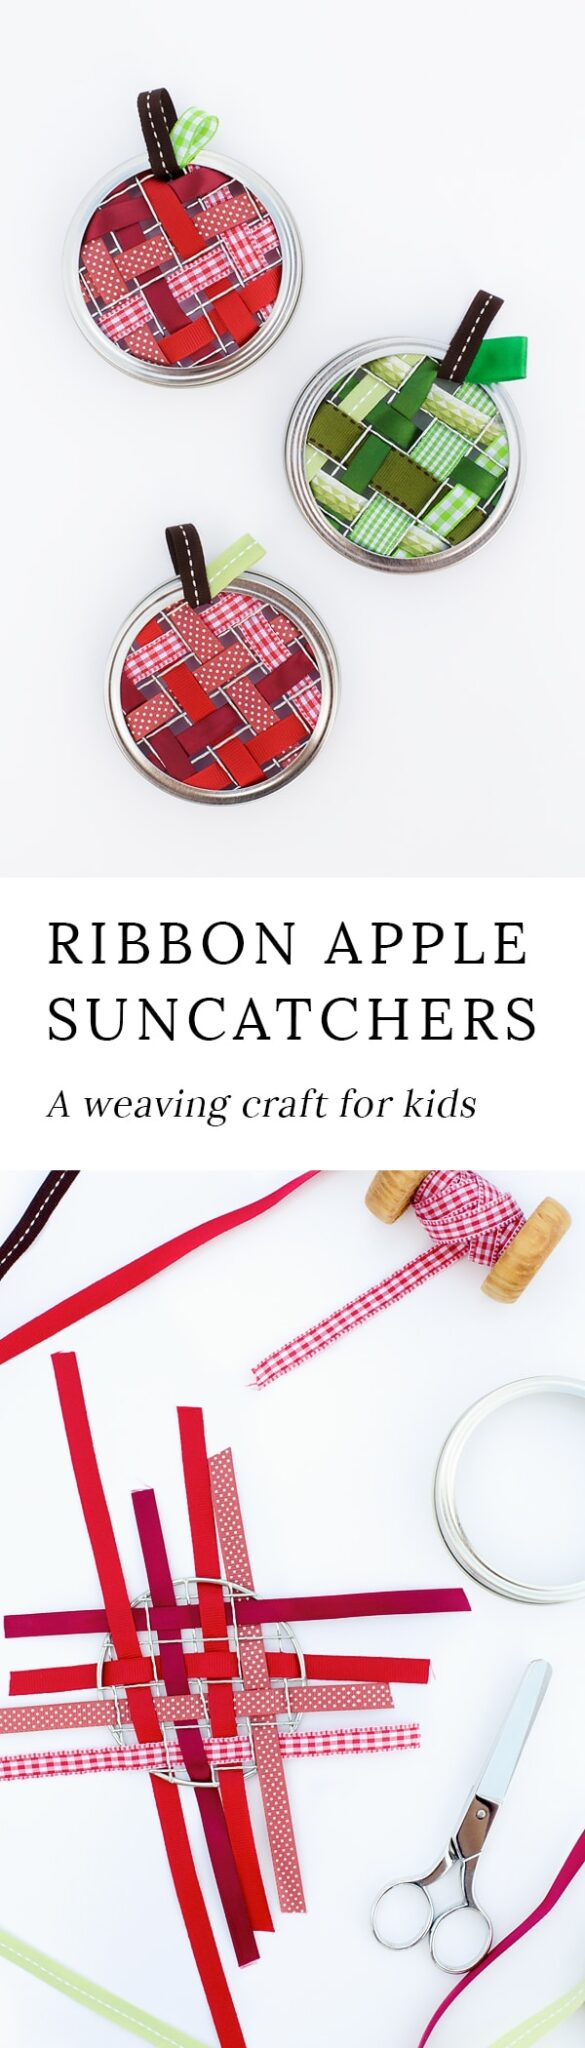 Kids of all ages will love weaving beautiful ribbon apple suncatchers with ribbon, mason jar lids, and mason jar frogs. It's the perfect fall craft for kids.